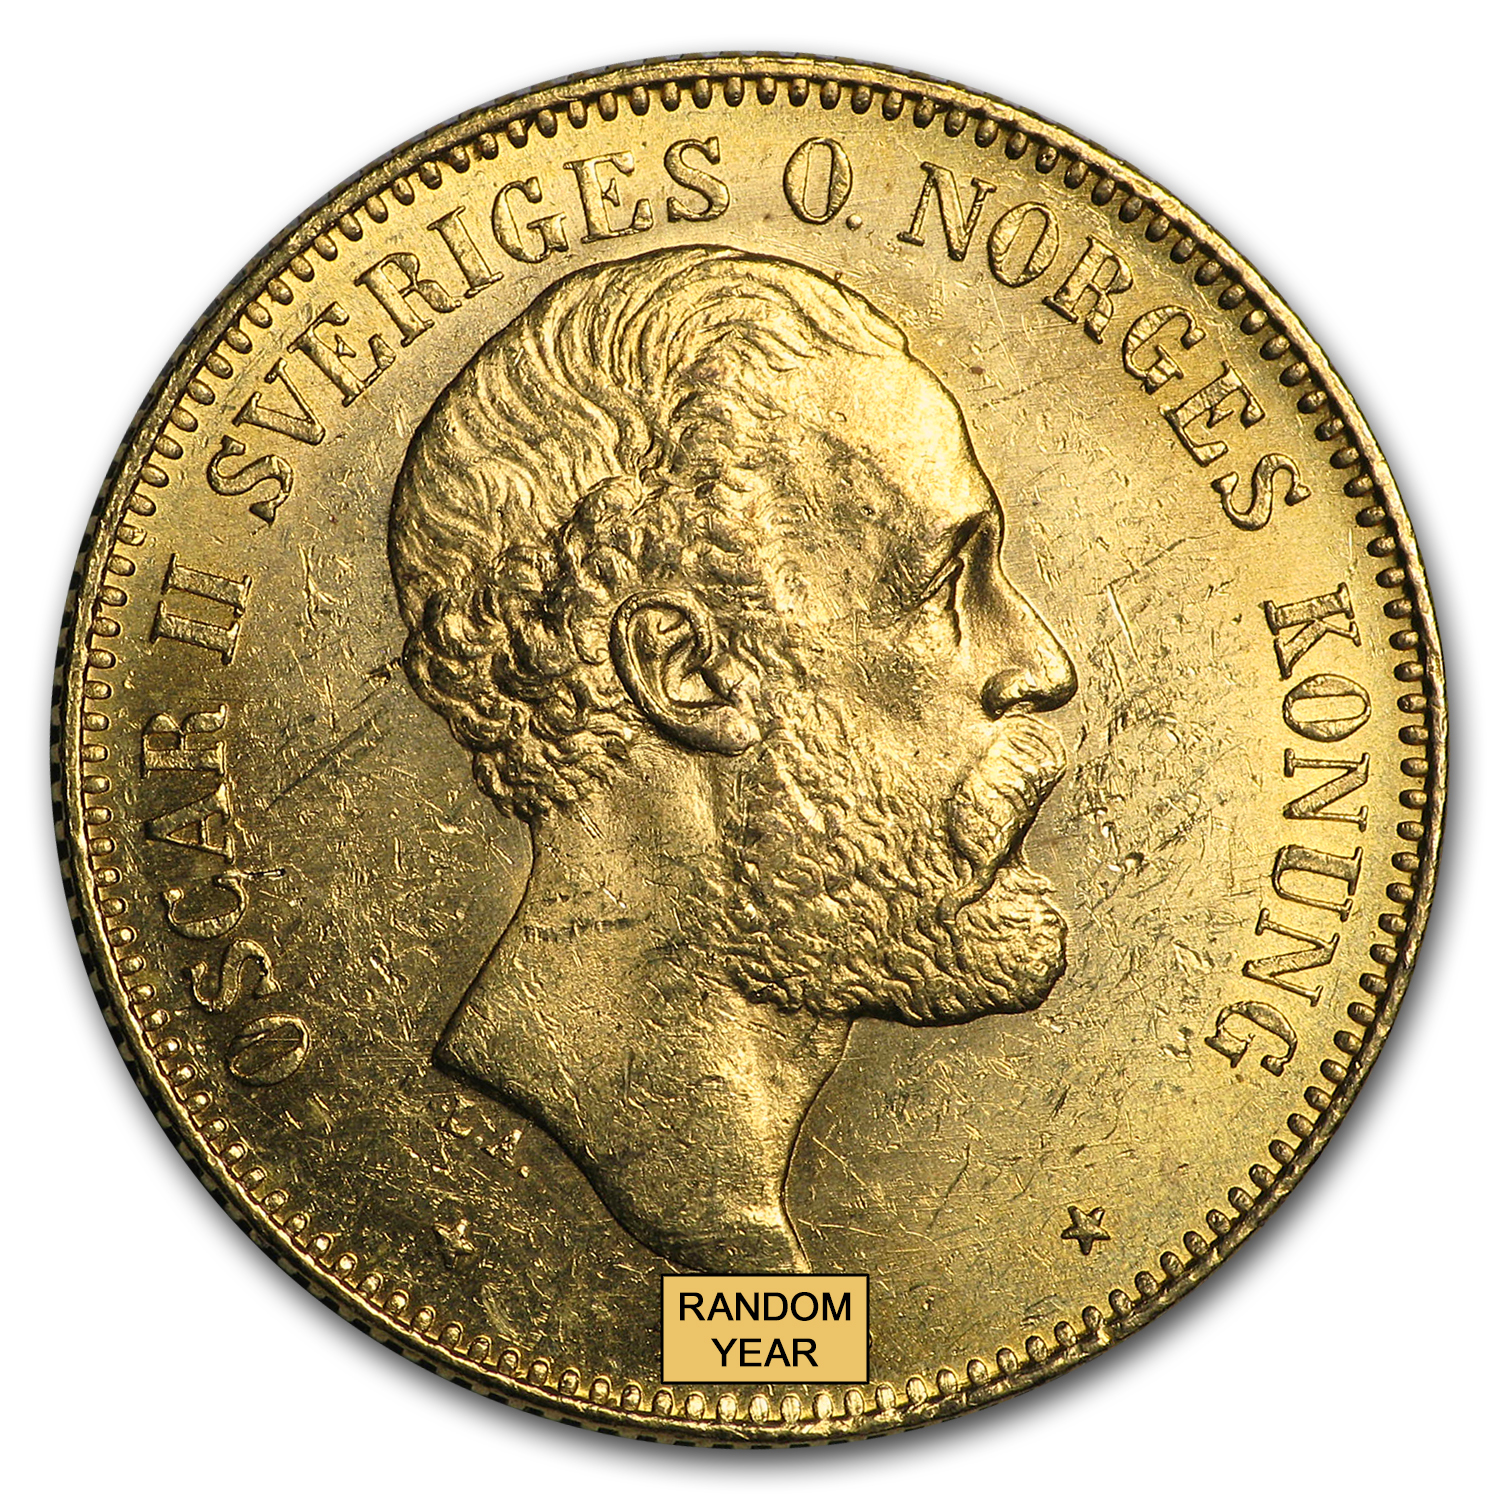 Sweden Gold 20 Kronor AU-BU (19th Century, Random)